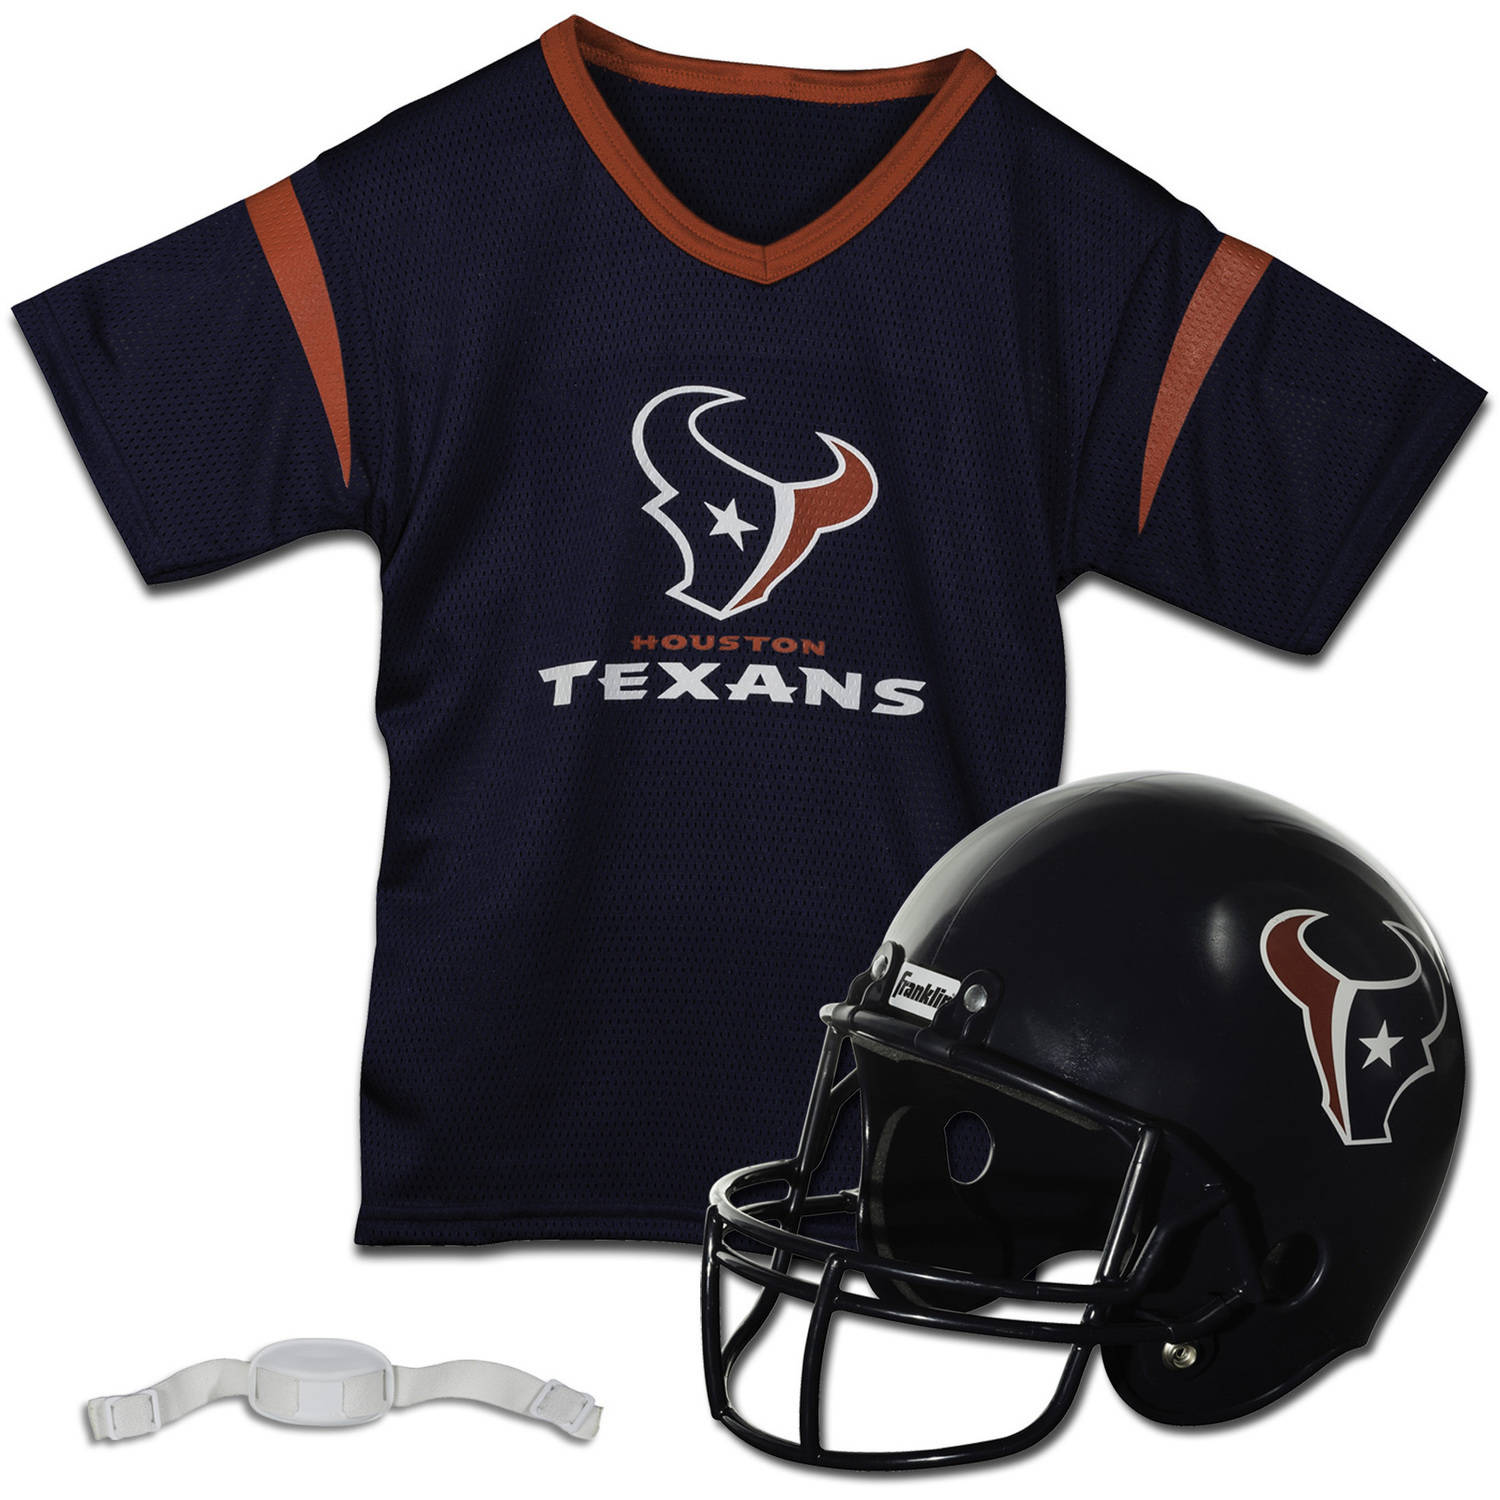 Franklin Sports NFL Houston Texans Team Licensed Helmet Jersey Set -  Walmart.com d9aae1d92